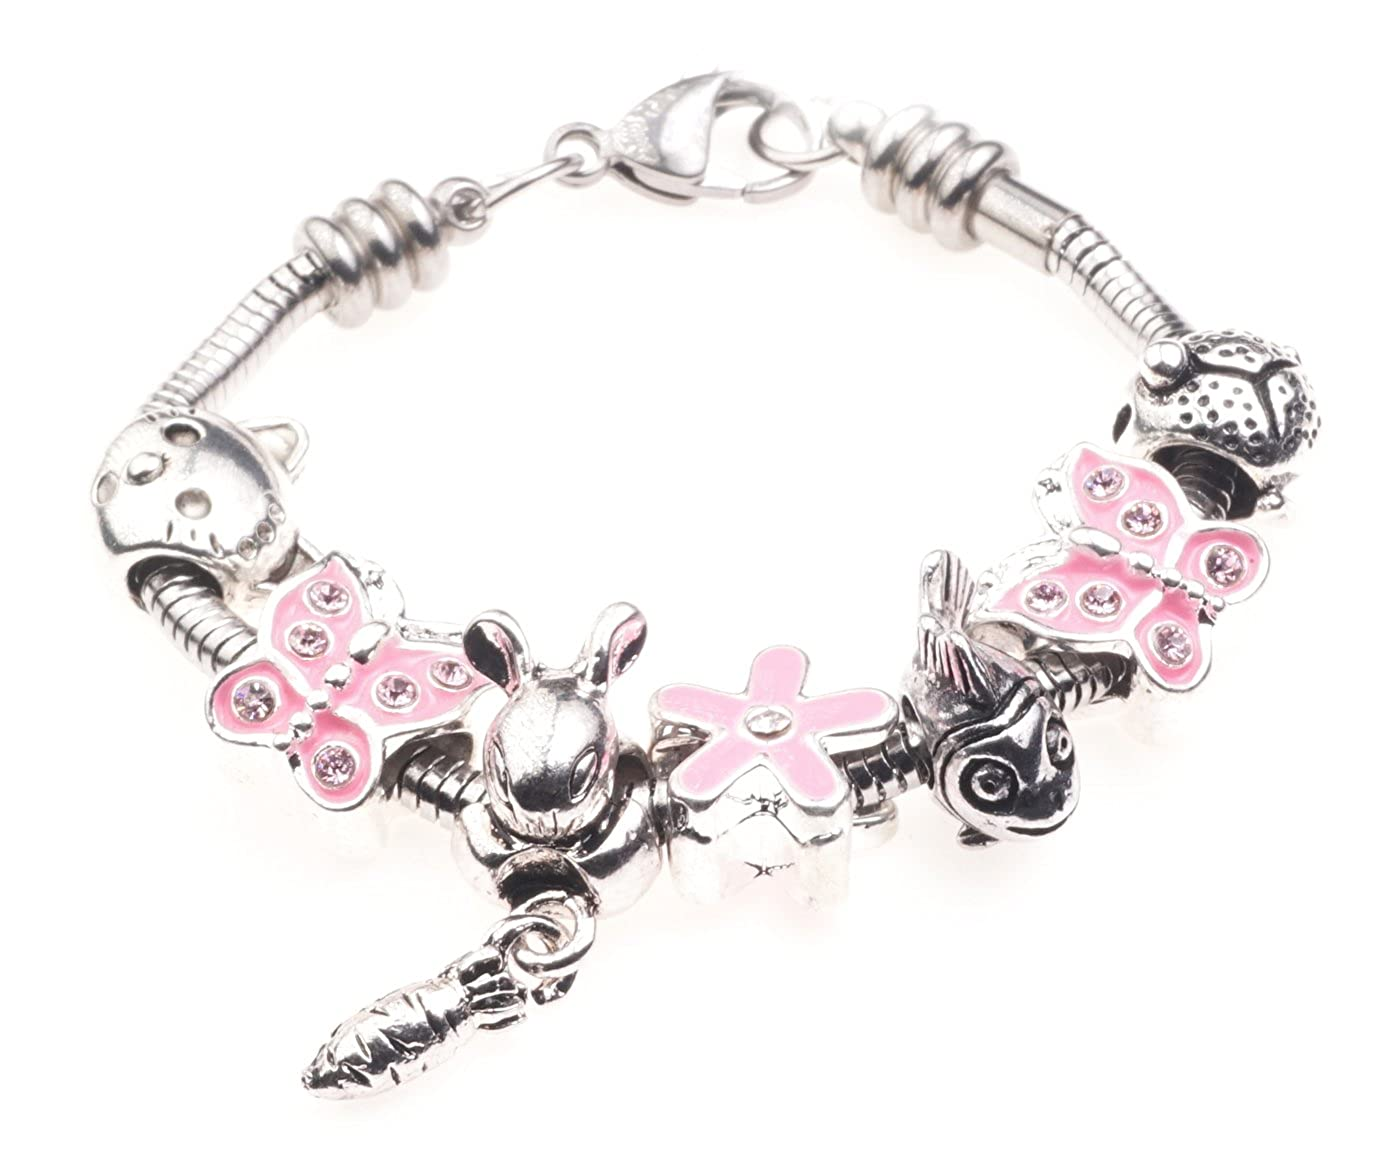 'I Love My Pets' Animal Themed Childrens Charm Bracelet with Gift Box Girls Jewellery Jewellery Hut BRkidsPets